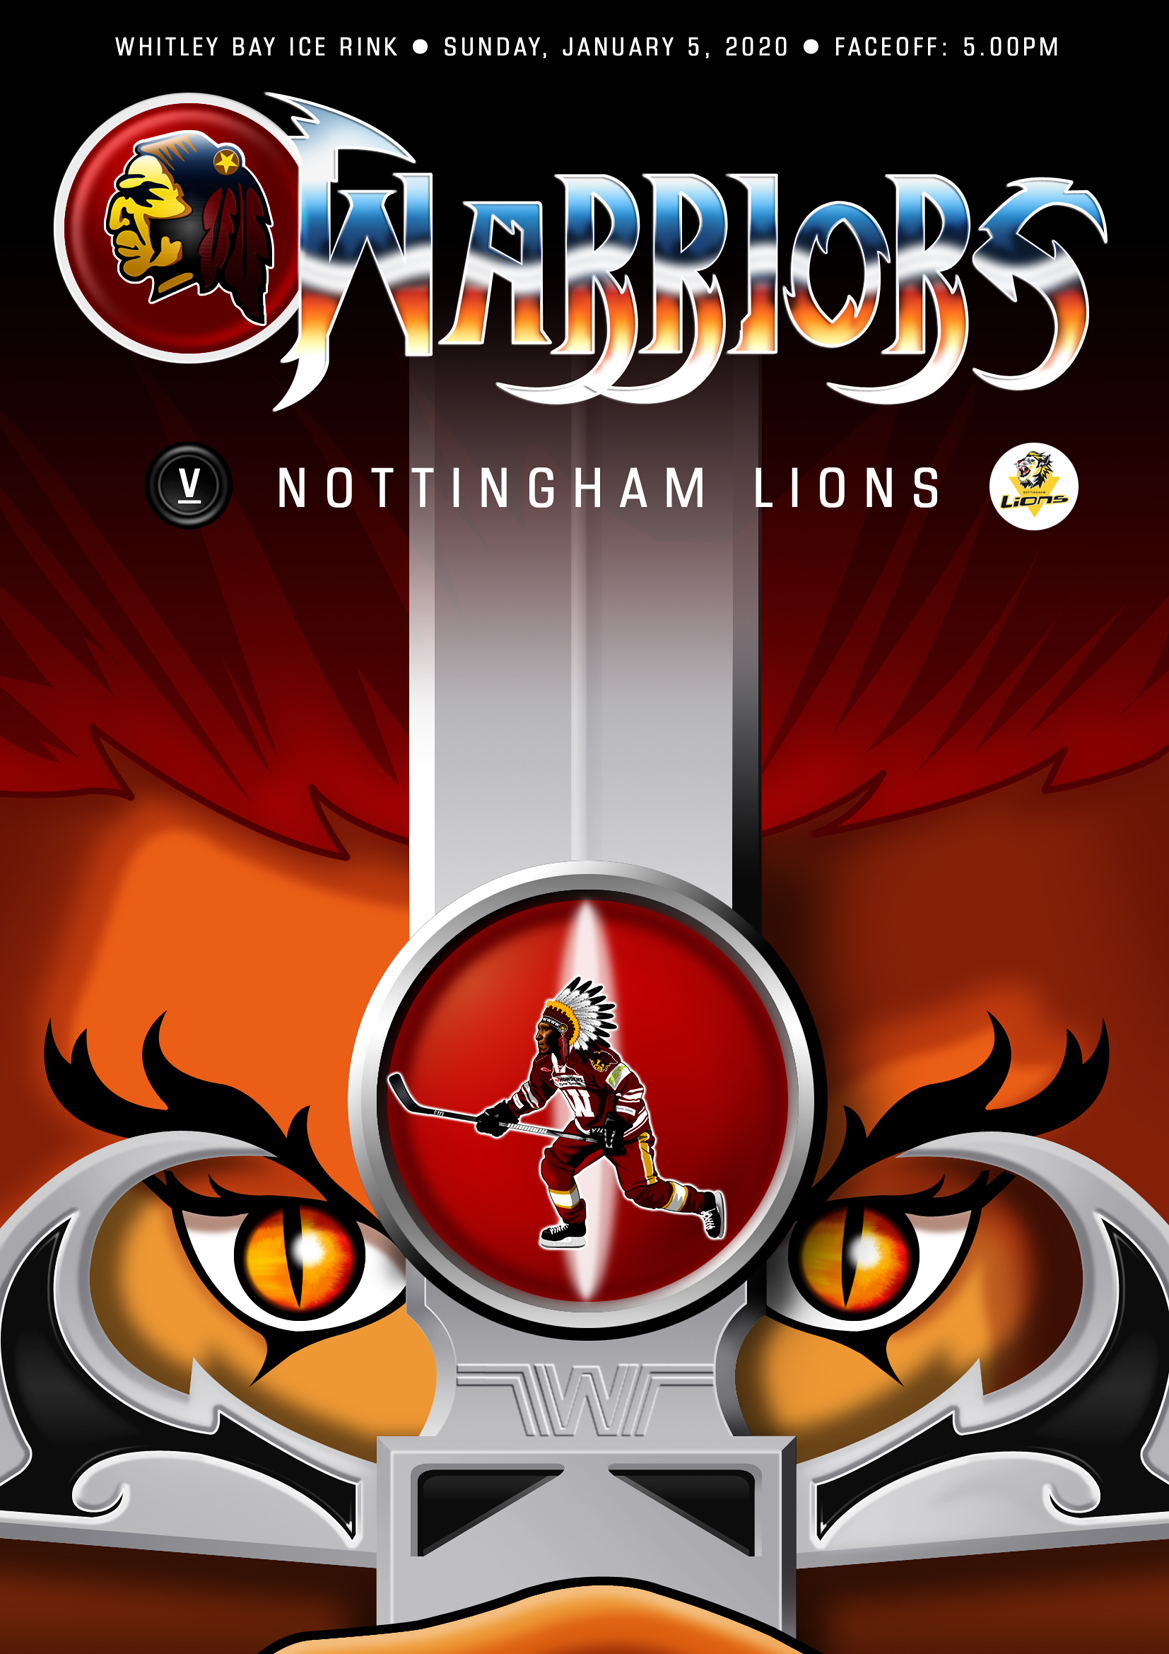 Whitley Warriors vs Nottingham Lions @ Whitley Bay Ice Rink, Sunday 5 January 2020, face off 5pm